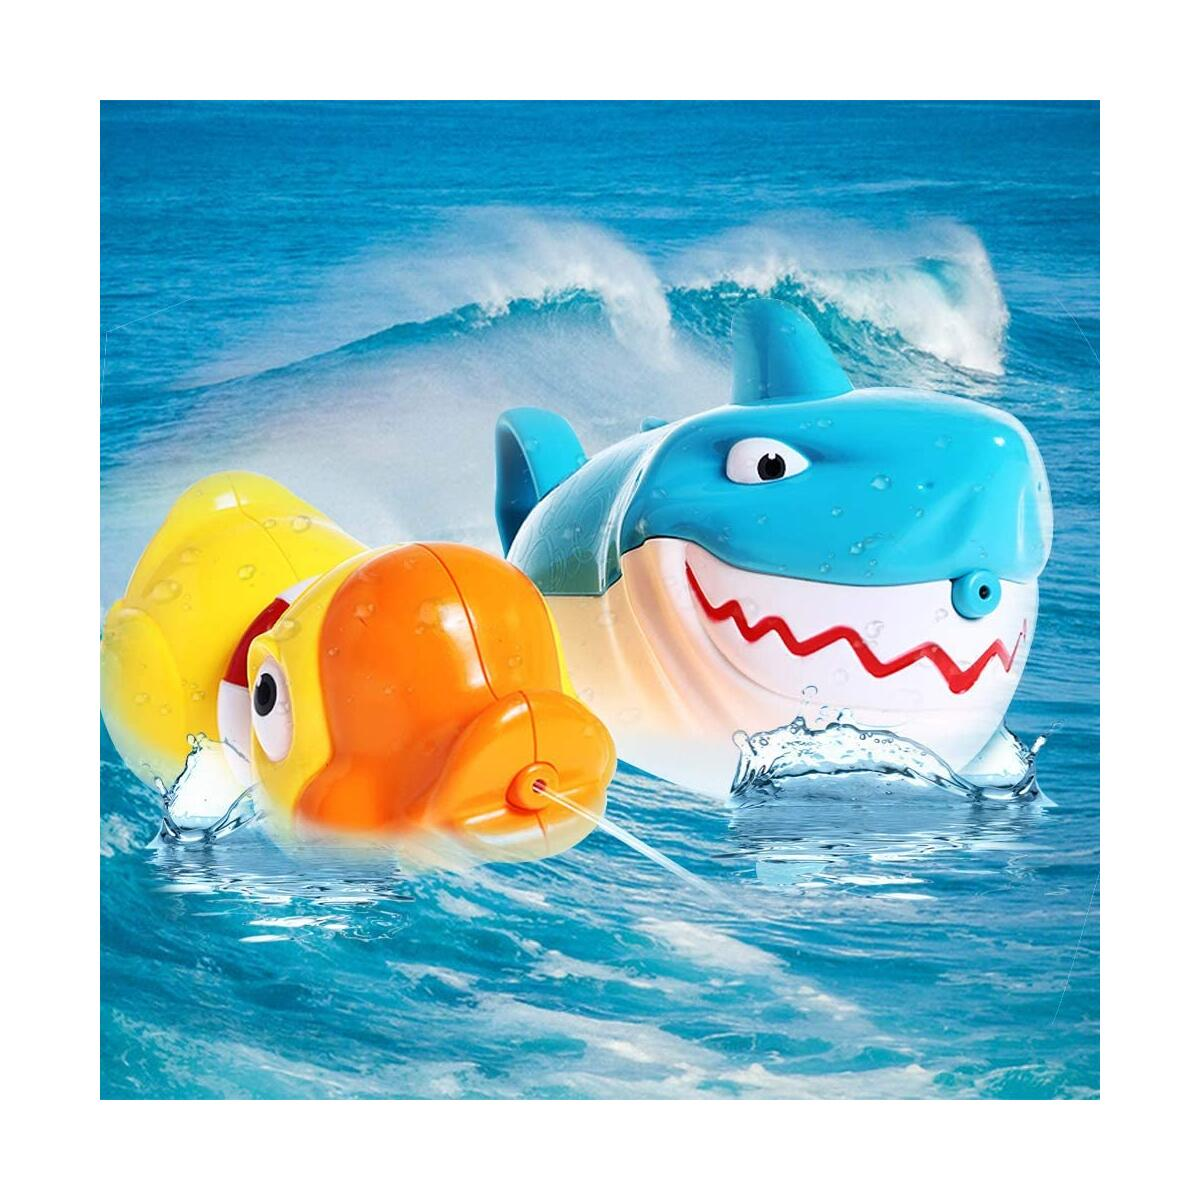 WISHTIME Bath Toys Water Toys Shark Duck Shooter Blaster for Bath Time Bathtub Bathroom Pool Tub Toys for Toddlers Kids Child Boys Girls Age 2 3 4 5 6 7 8 Years Old